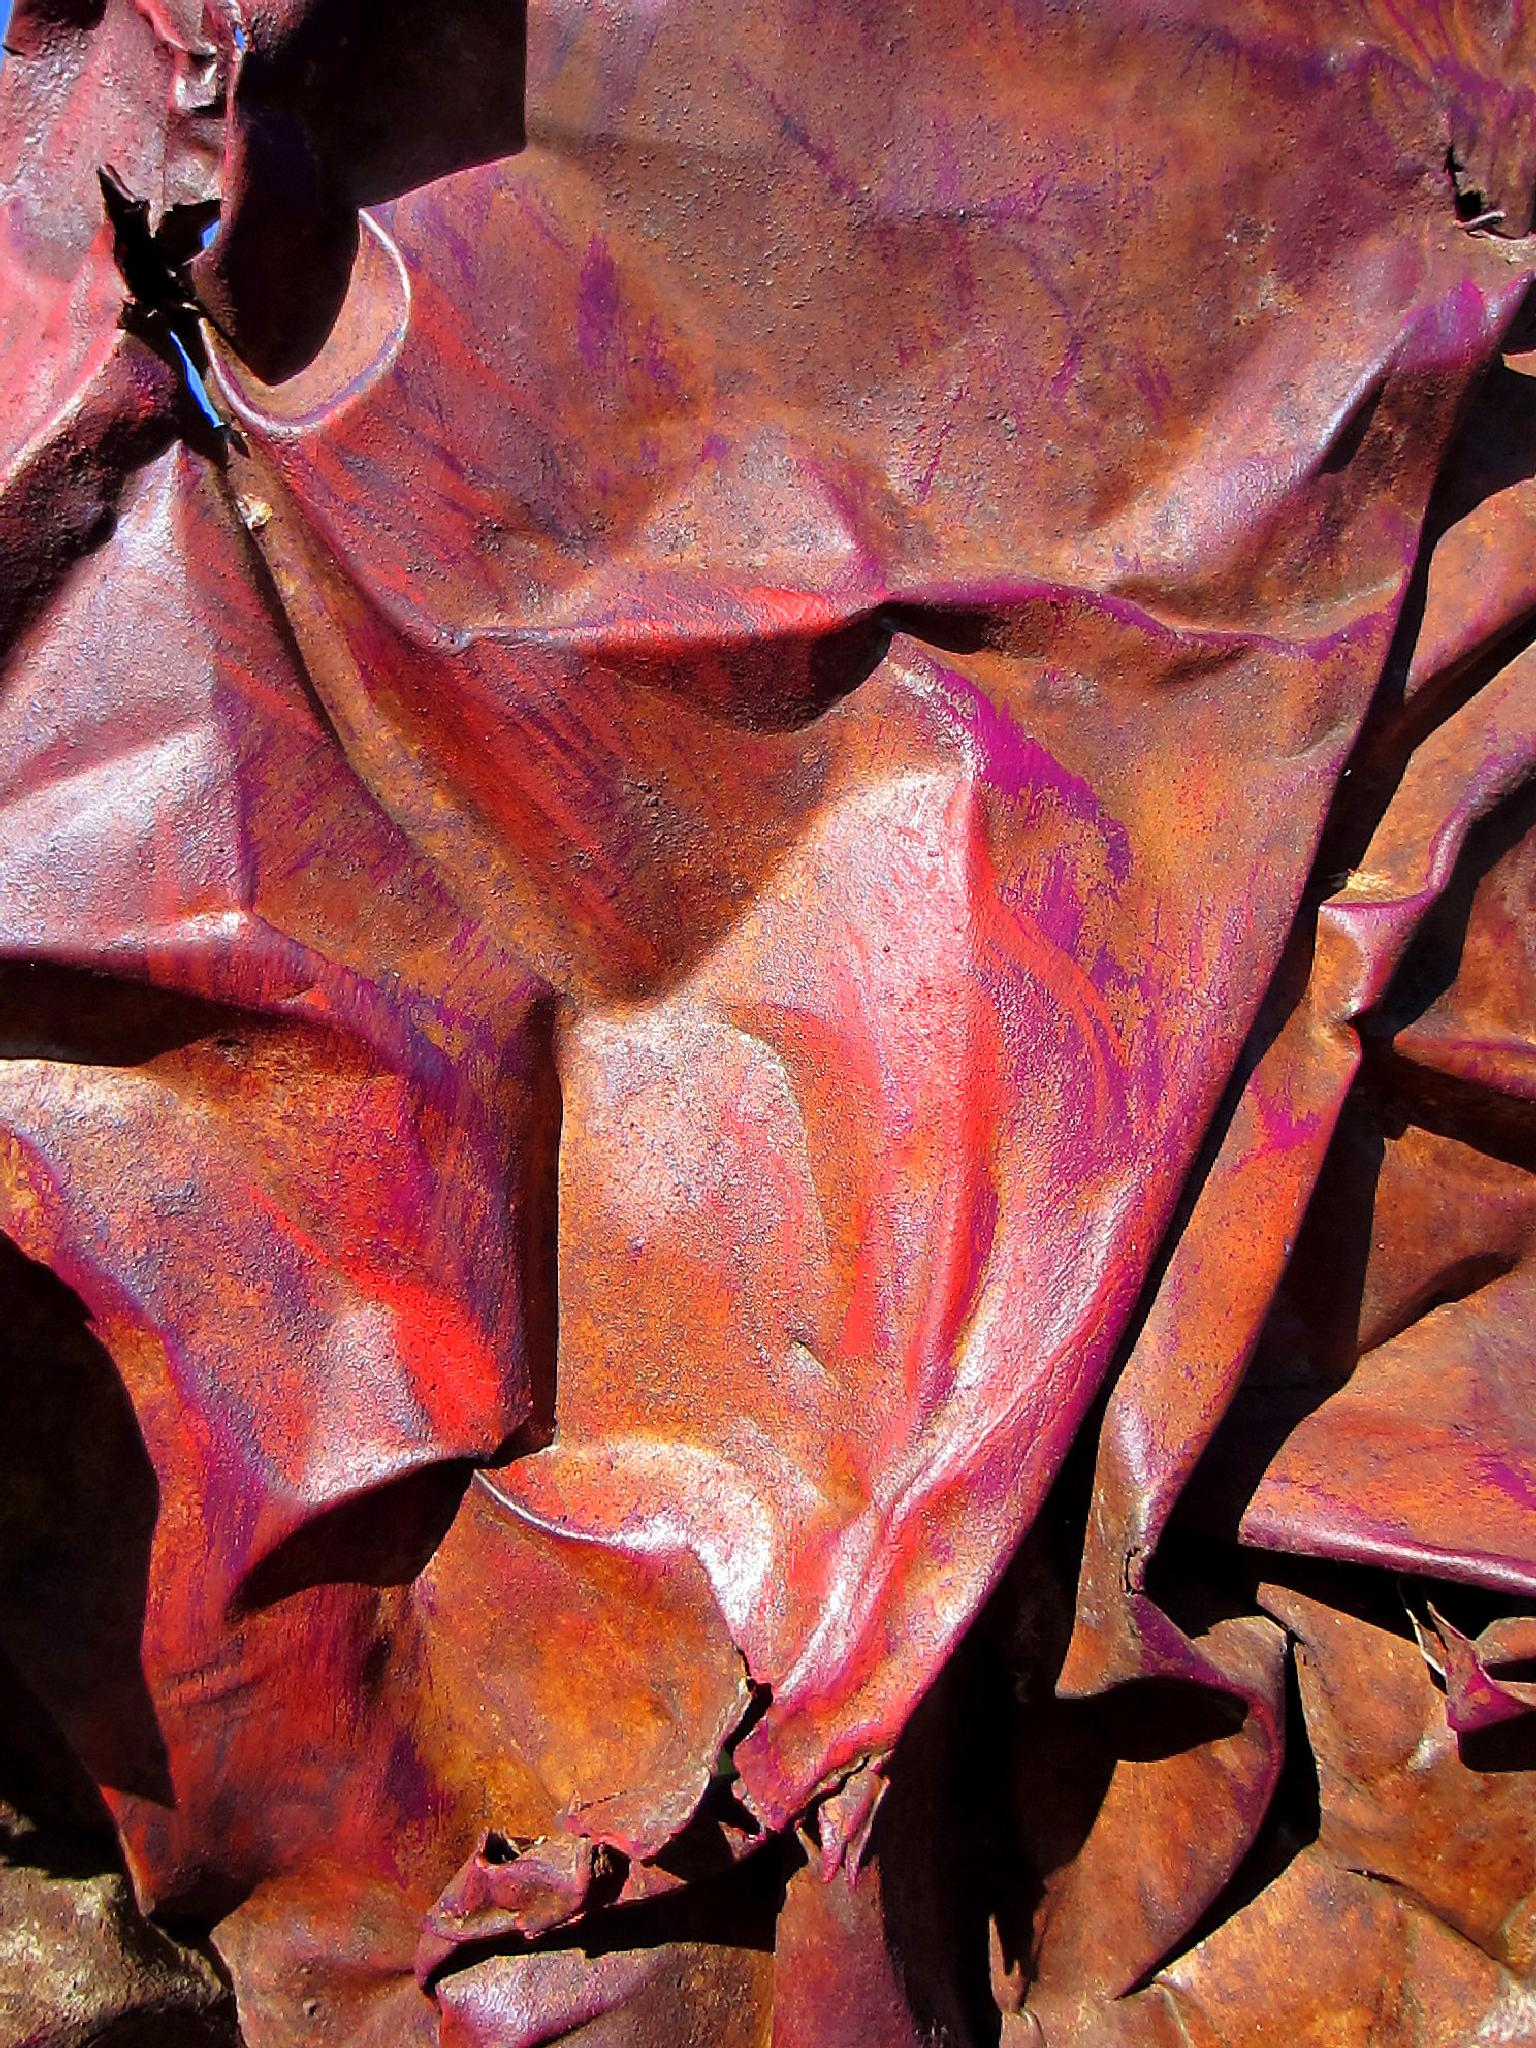 Crumpled Iron by mpross1